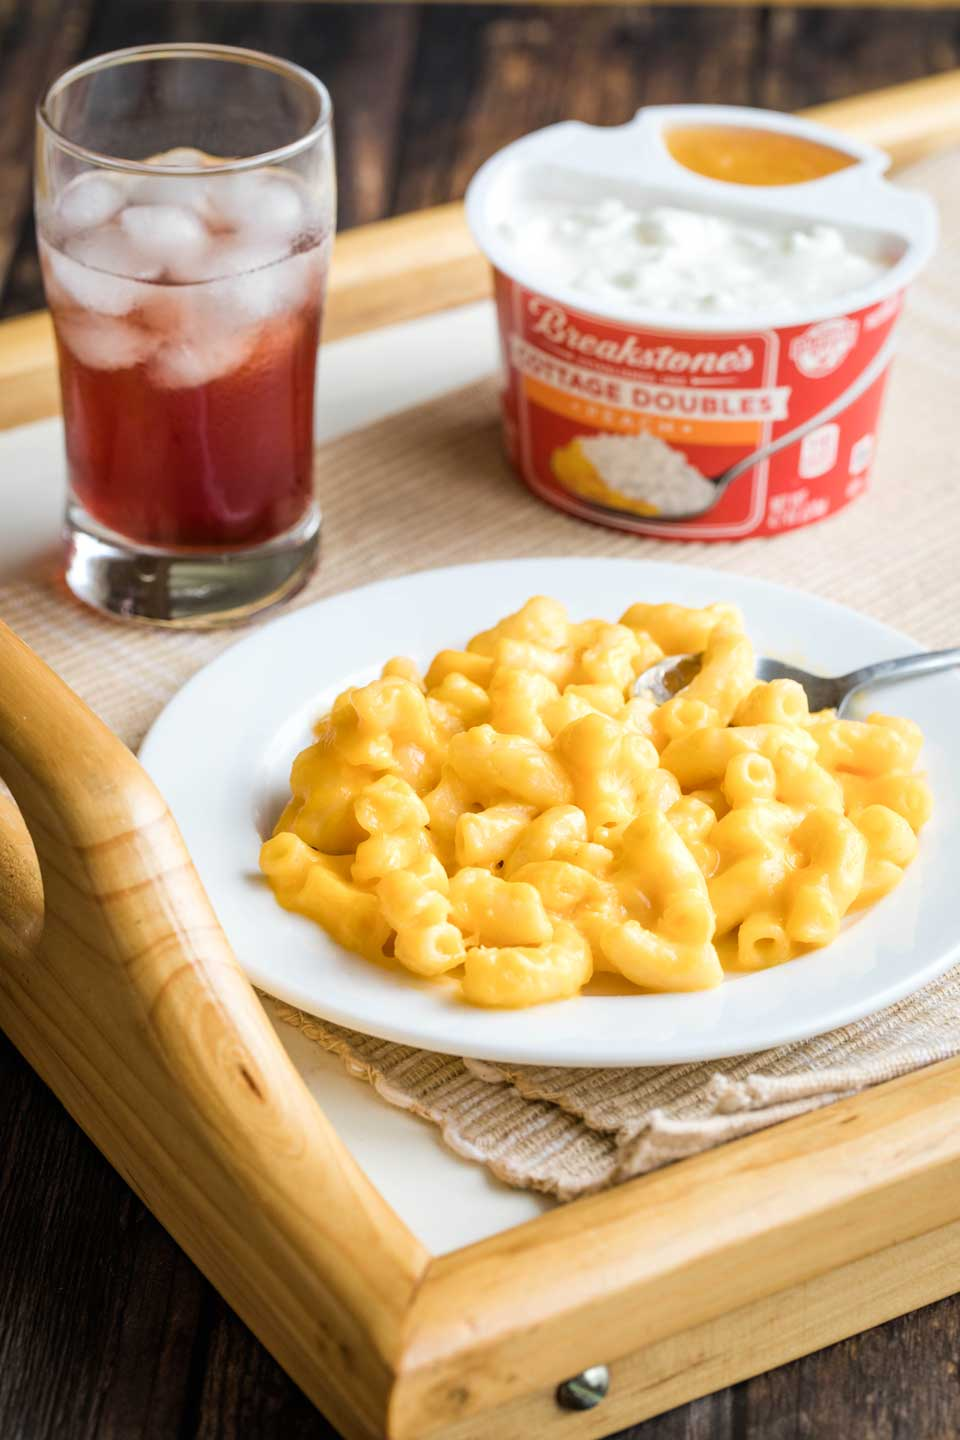 tray holding a plate of mac and cheese, a glass of juice, and a container of cottage cheese